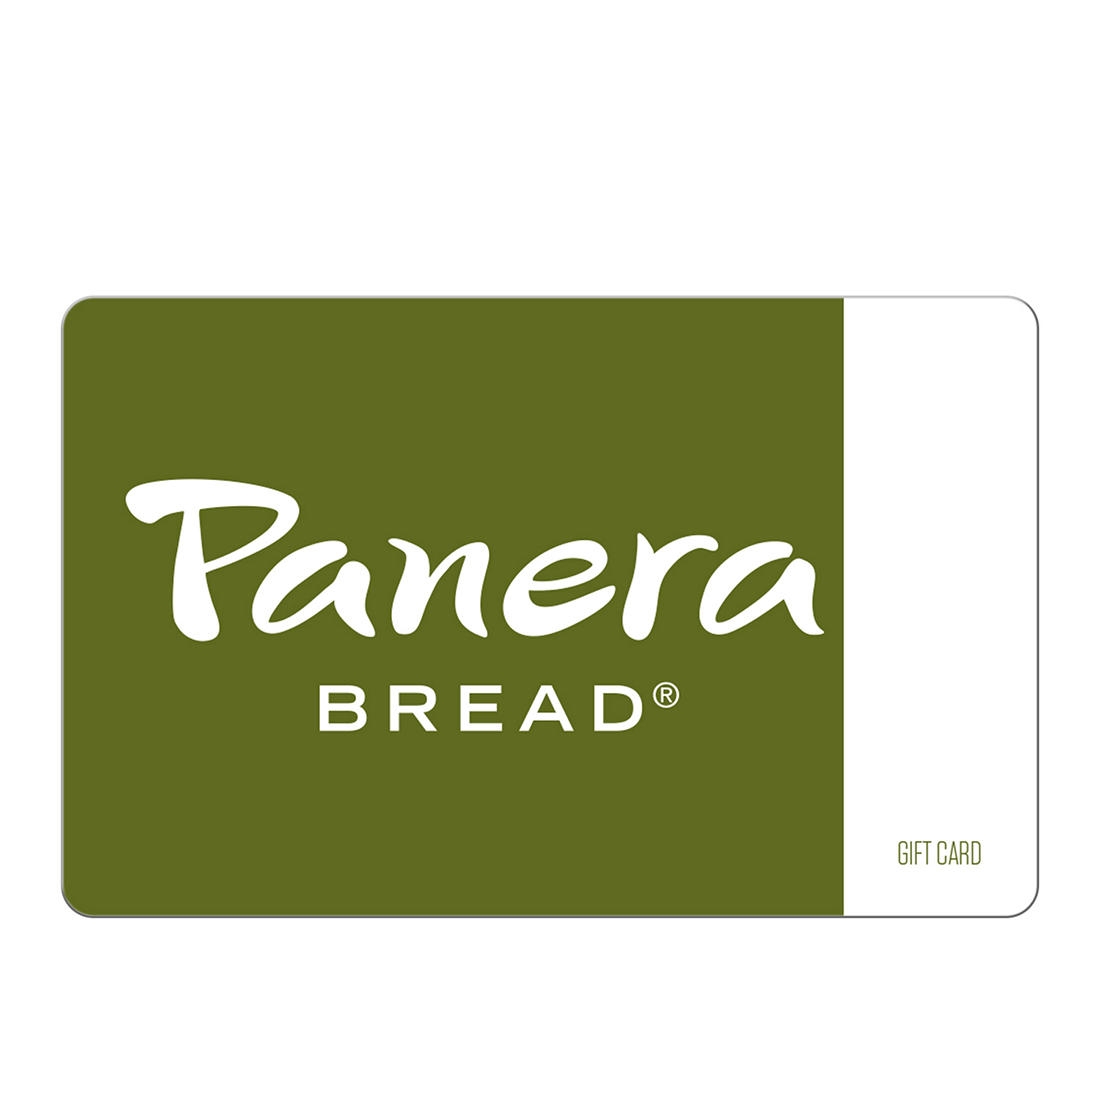 photograph relating to Panera Bread Printable Menu identified as Panera Bread $10 Present Card, 3 pk.